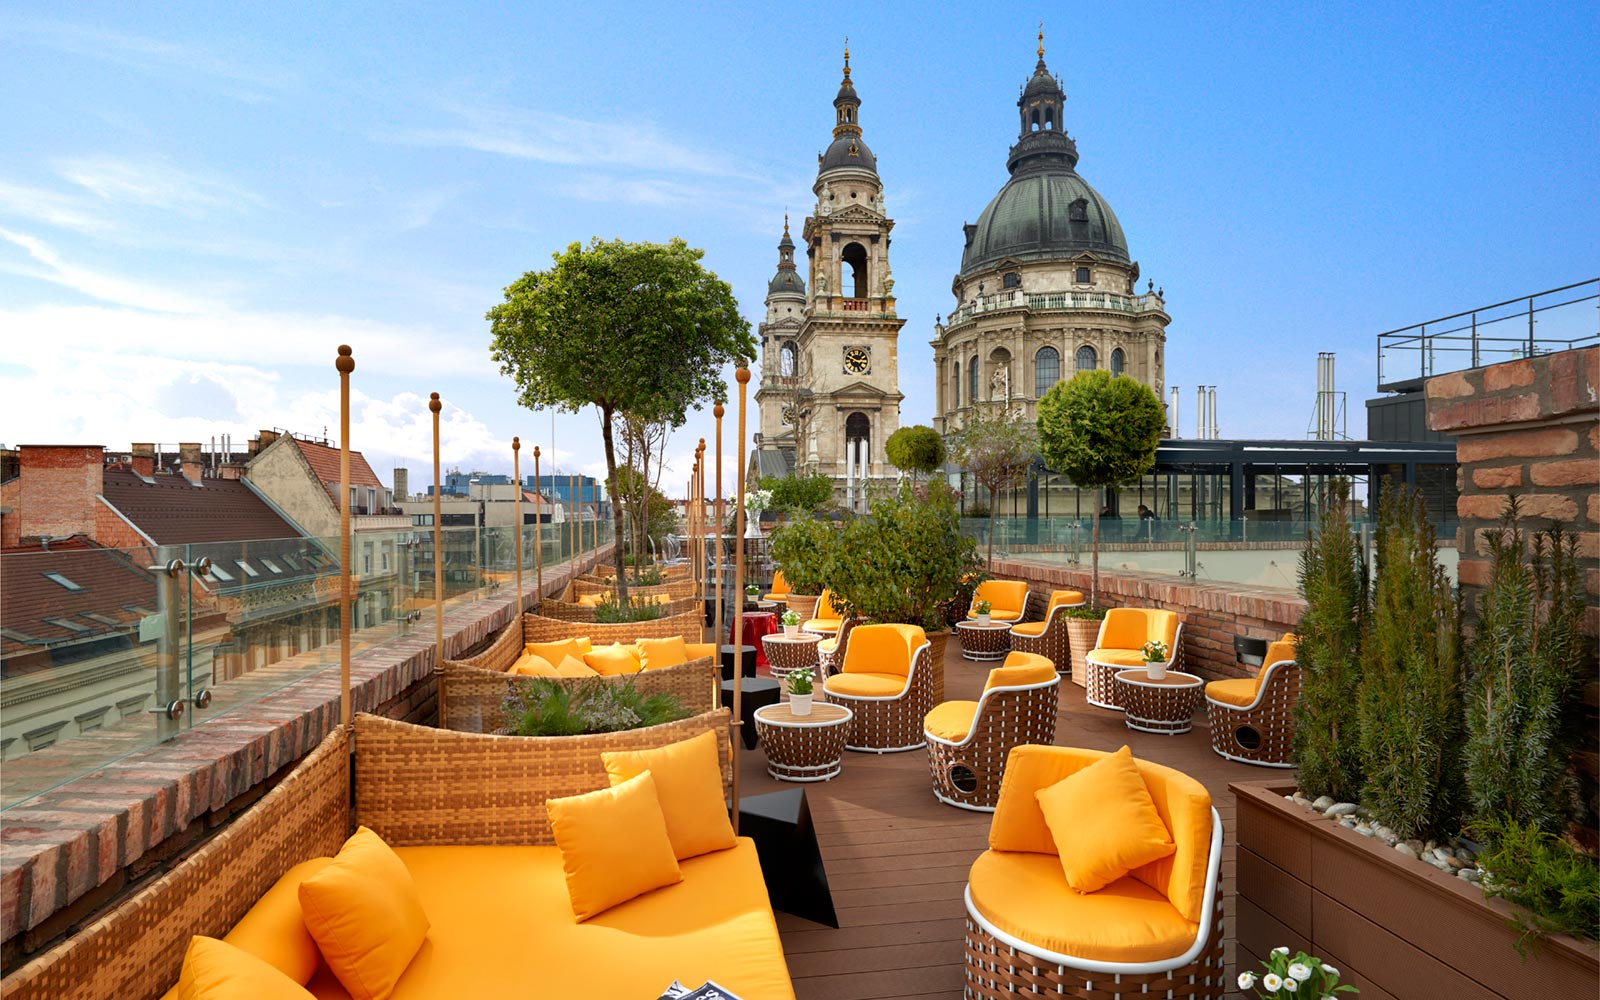 No. 6: Aria Hotel Budapest in Hungary